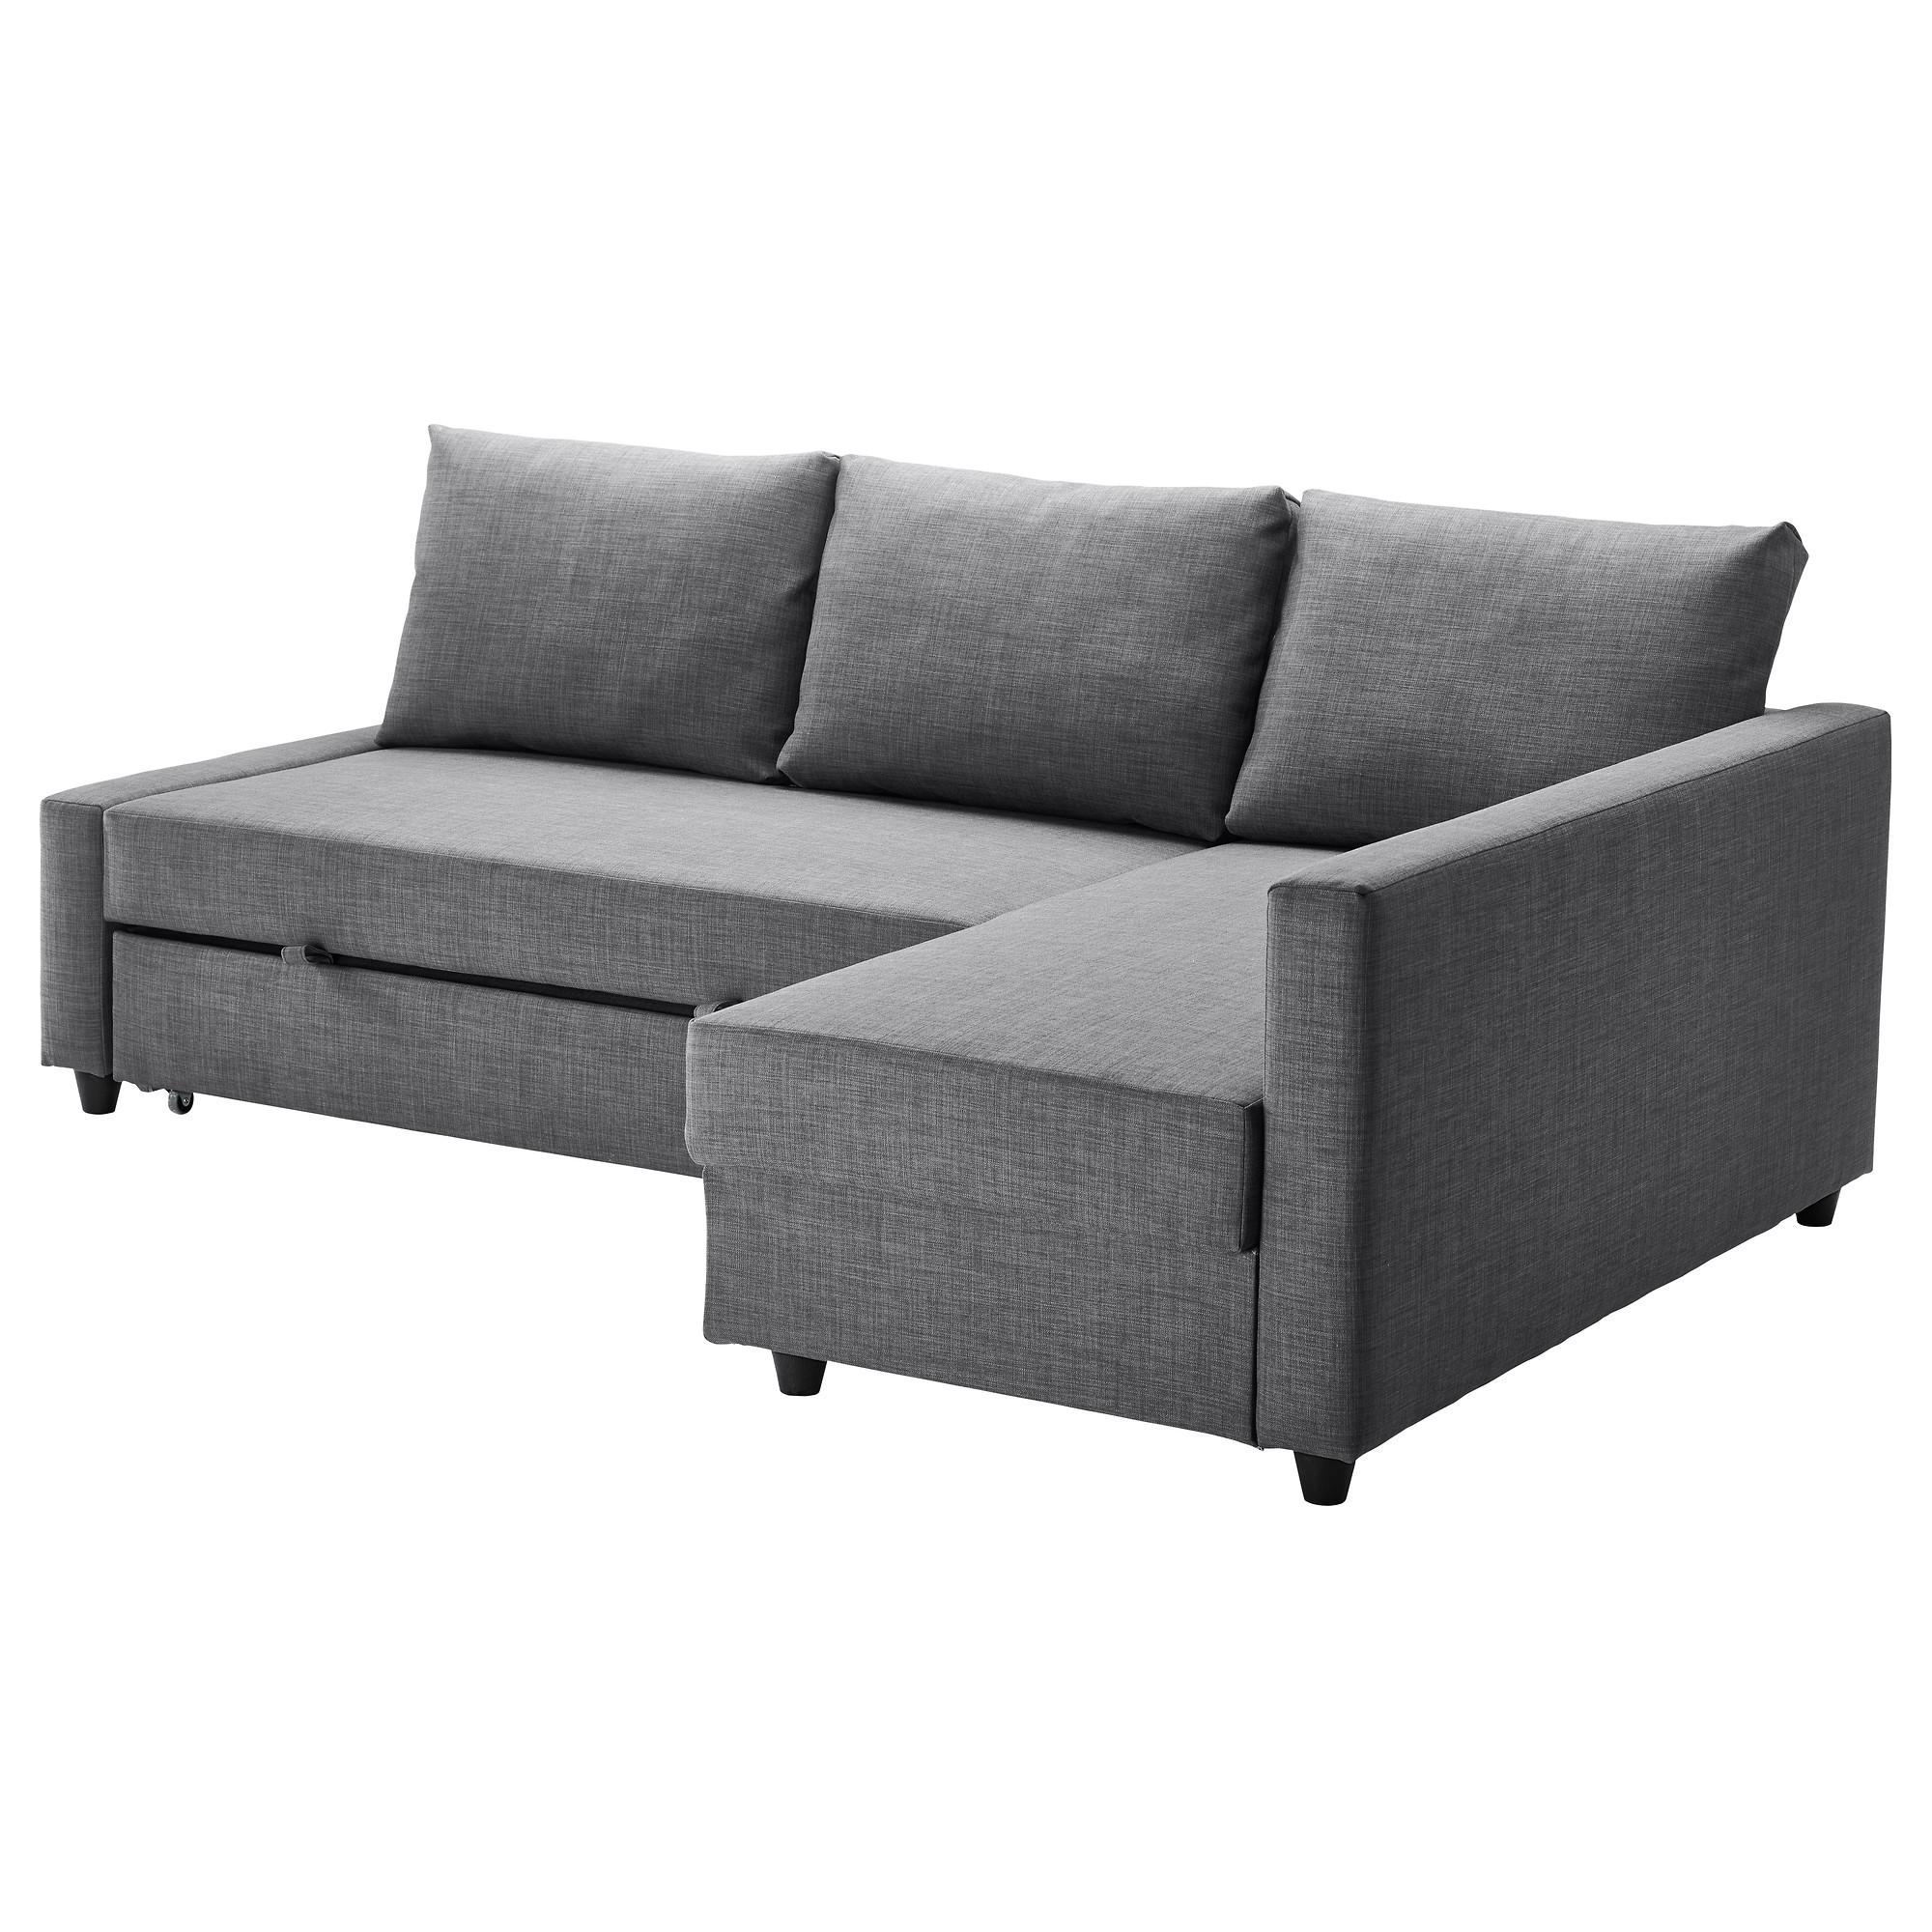 order call eurway sleeper valverde lounge to furniture chaise modern